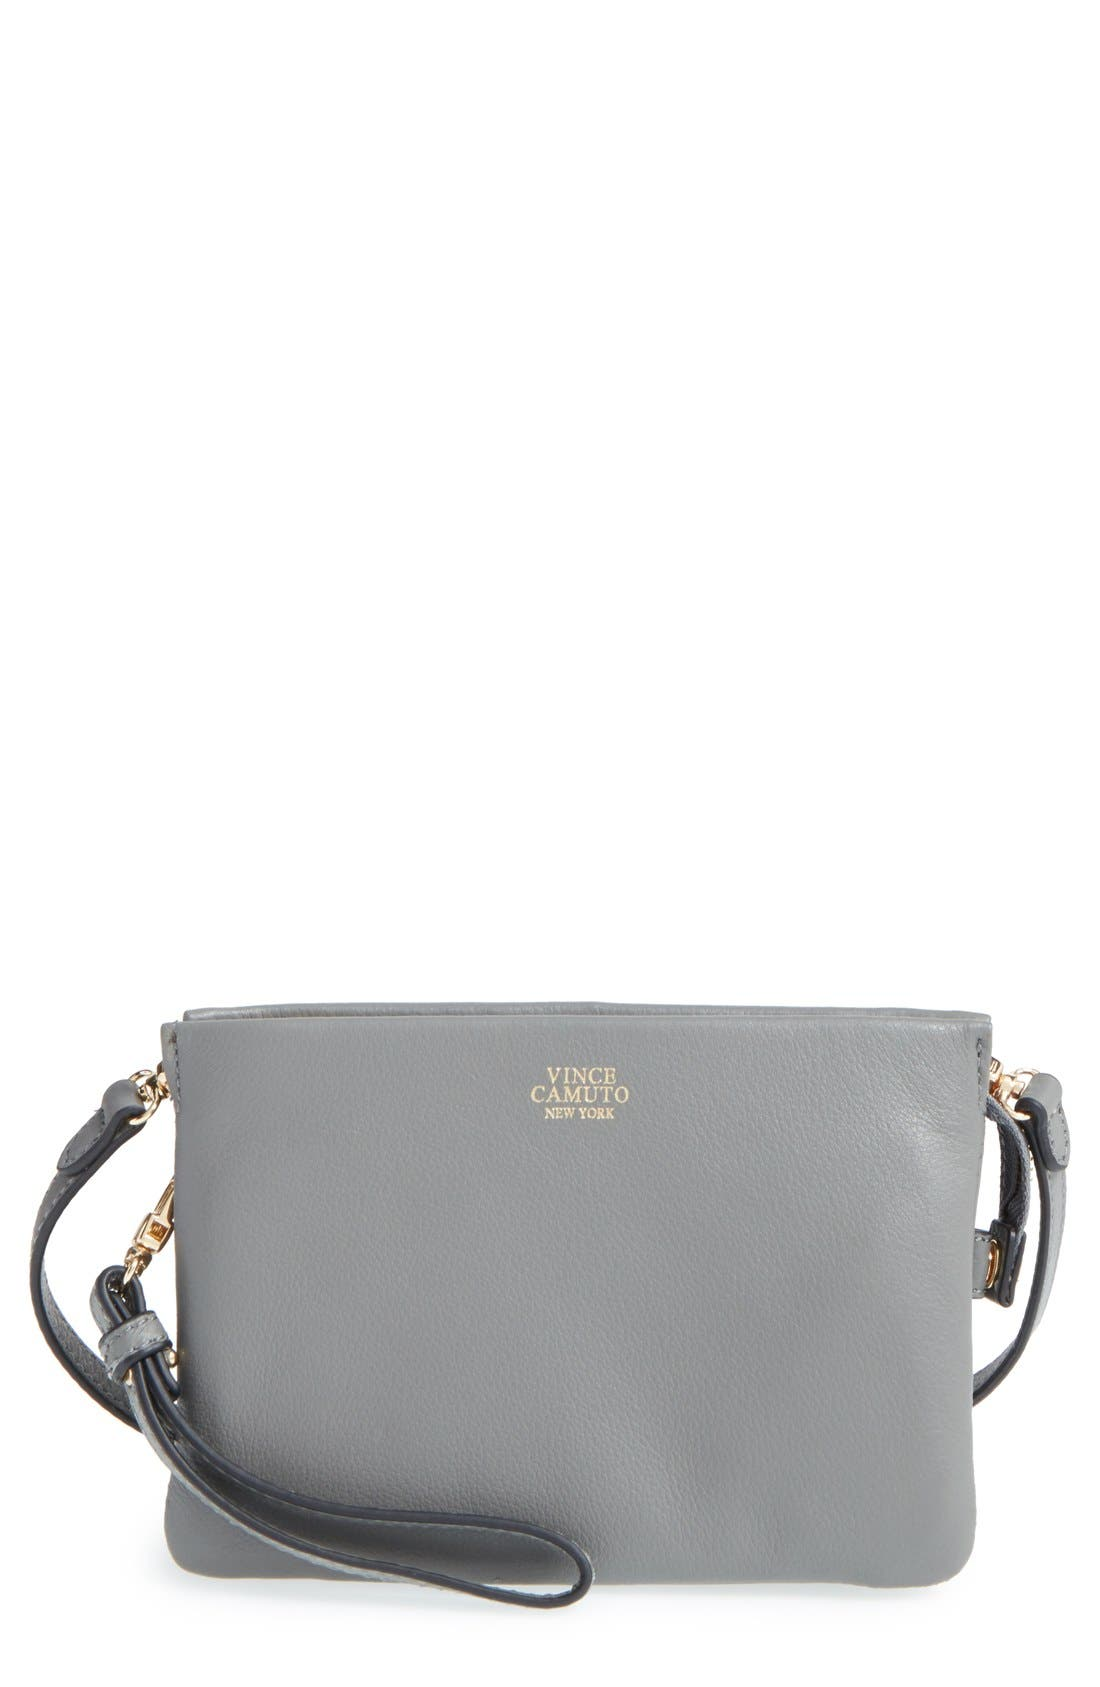 Main Image - Vince Camuto 'Cami' Leather Crossbody Bag